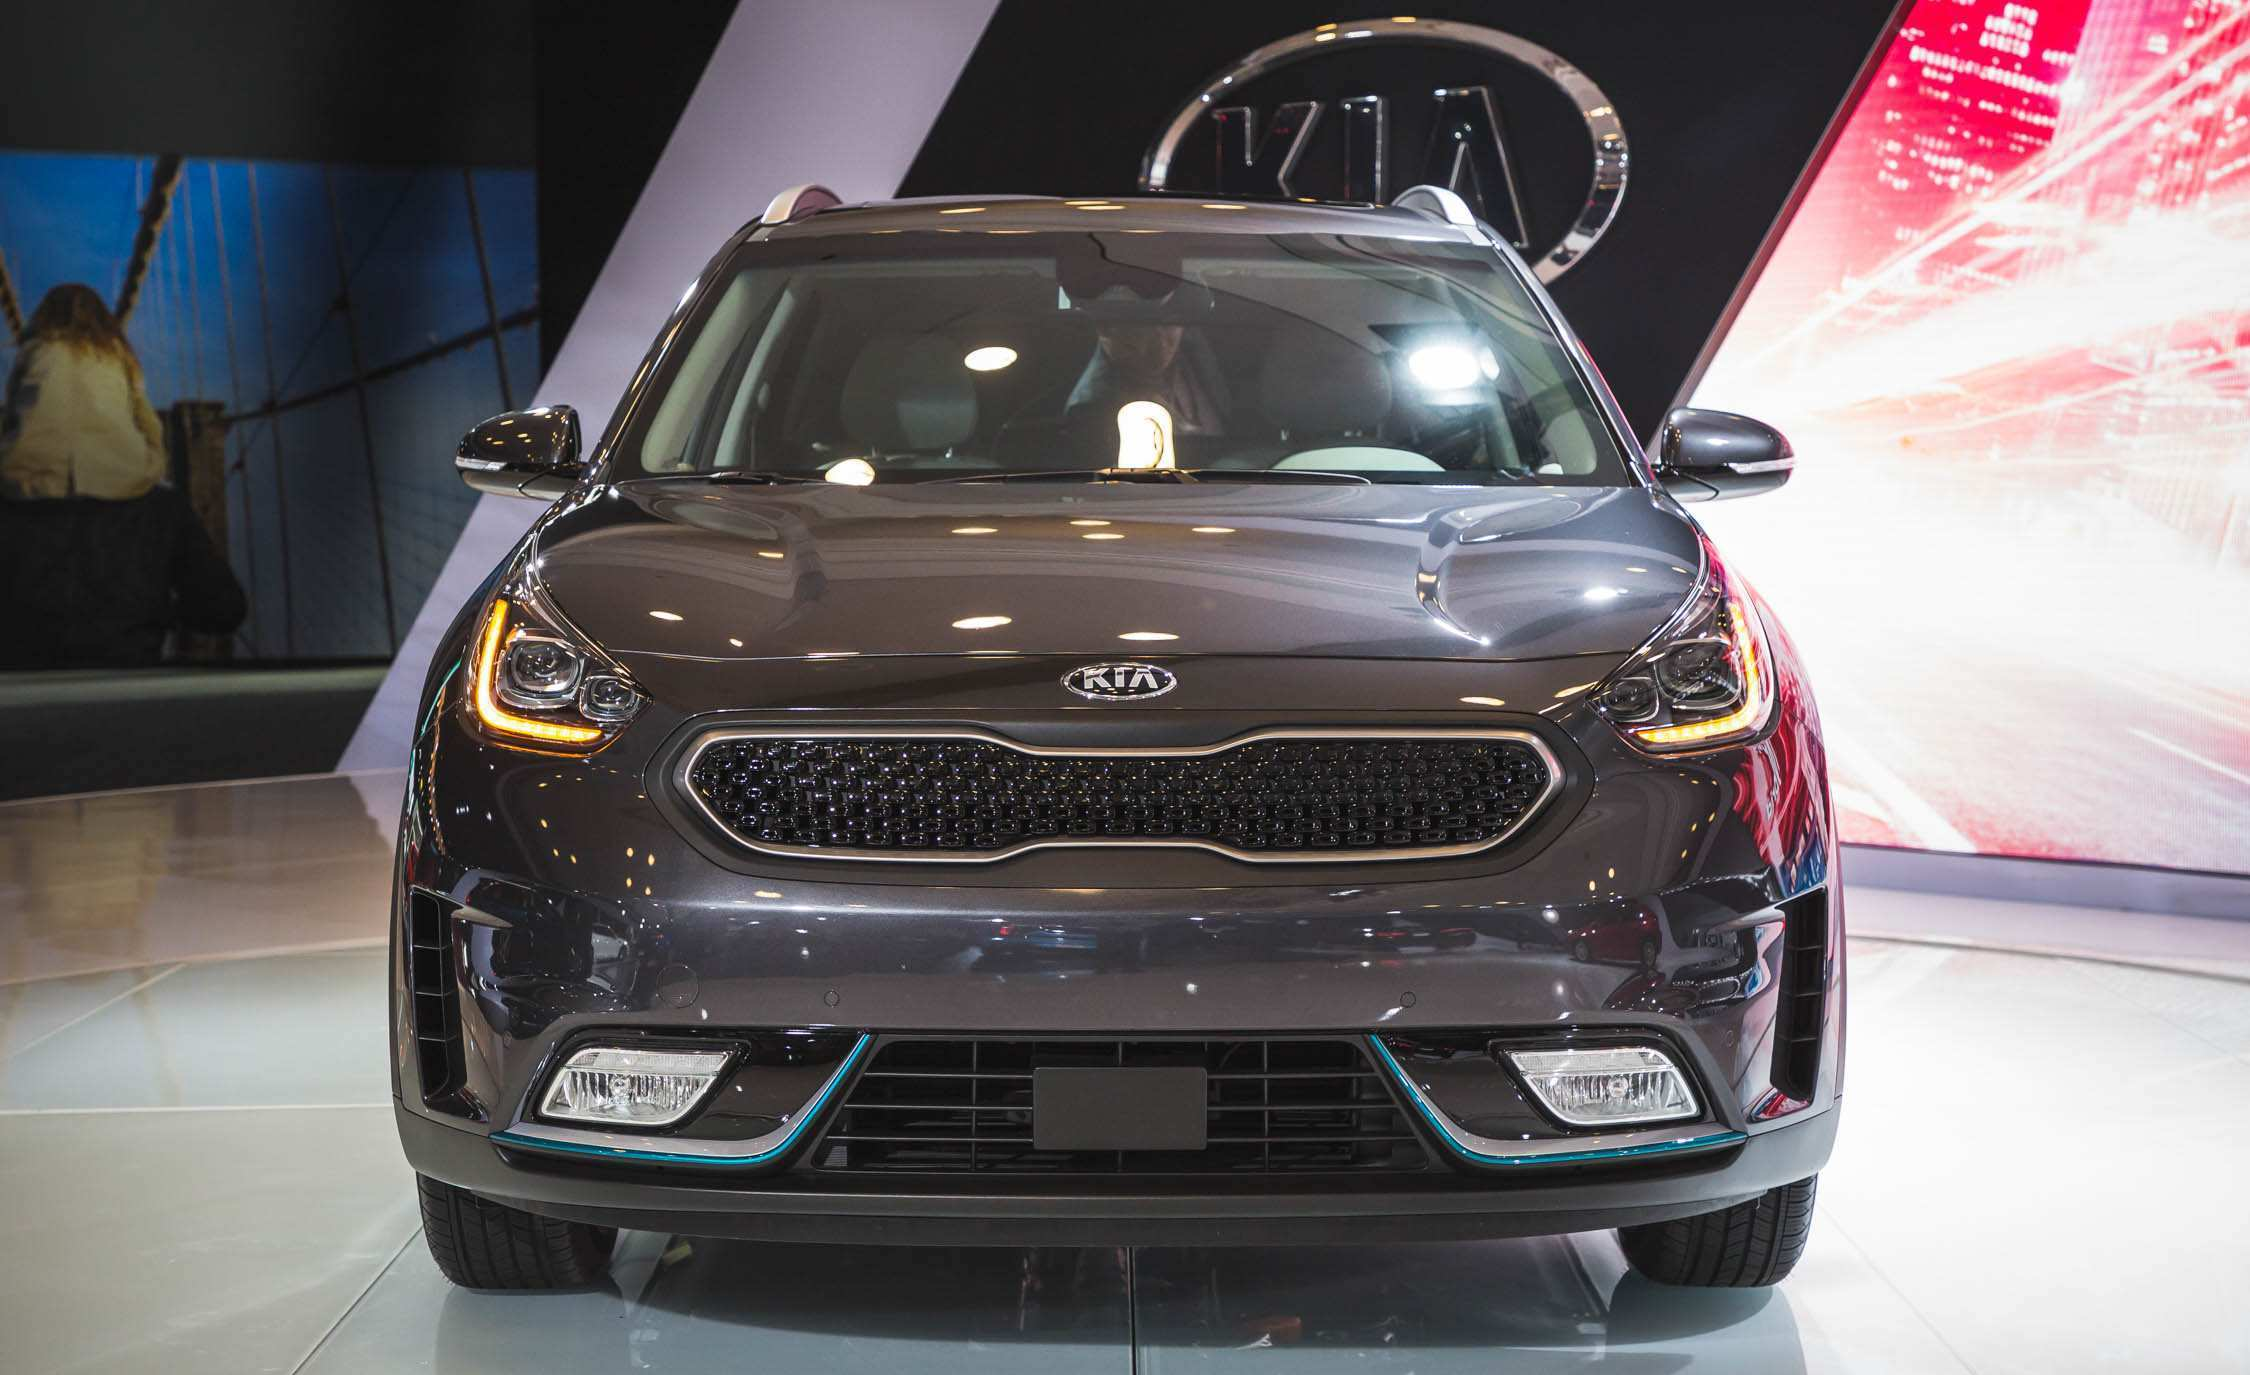 72 Best Review The Kia Niro 2019 Canada Redesign Configurations for The Kia Niro 2019 Canada Redesign